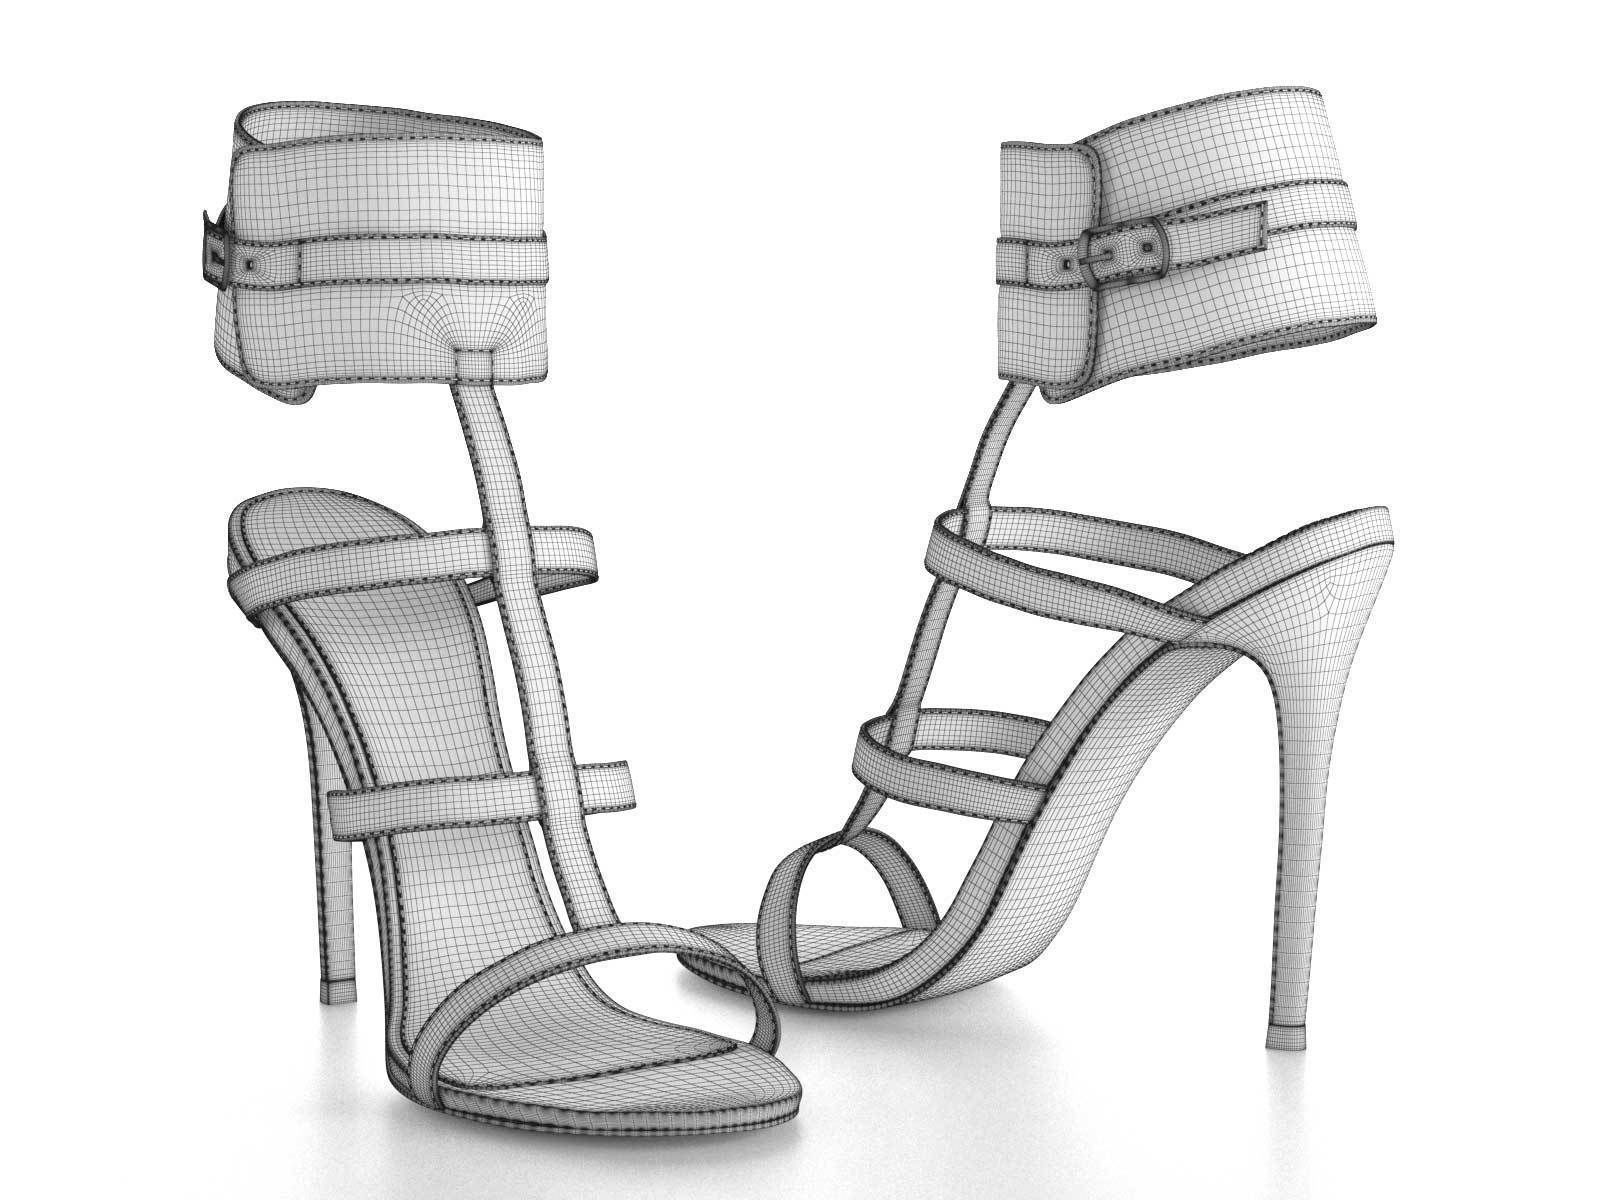 1600x1200 Nika Ankle Cuff High Heels 3d Cgtrader